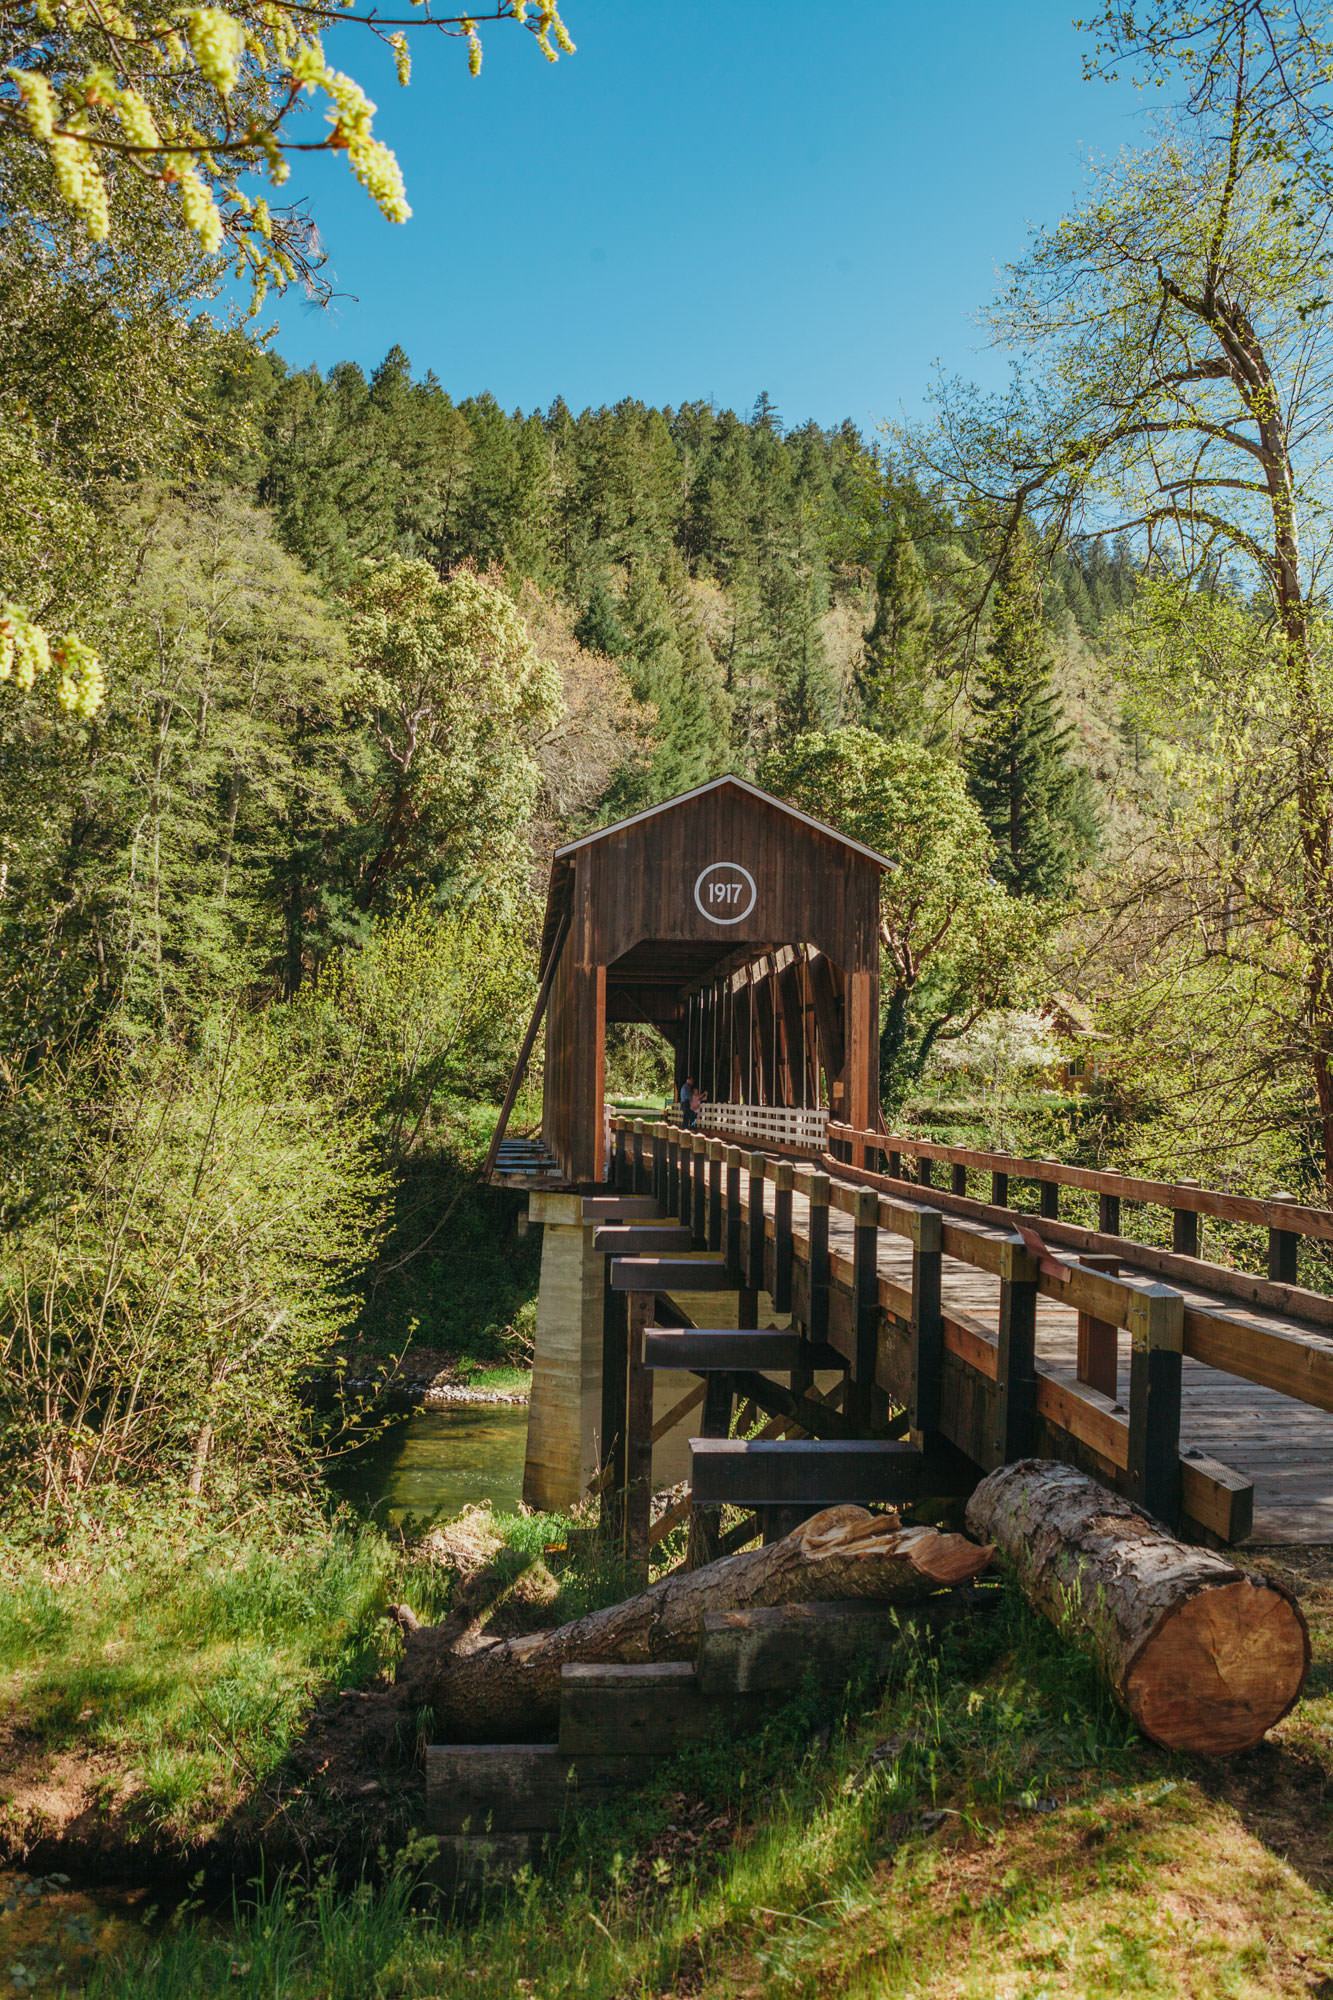 The McKee Covered Bridge is a charming wooden structure surrounded by trees.